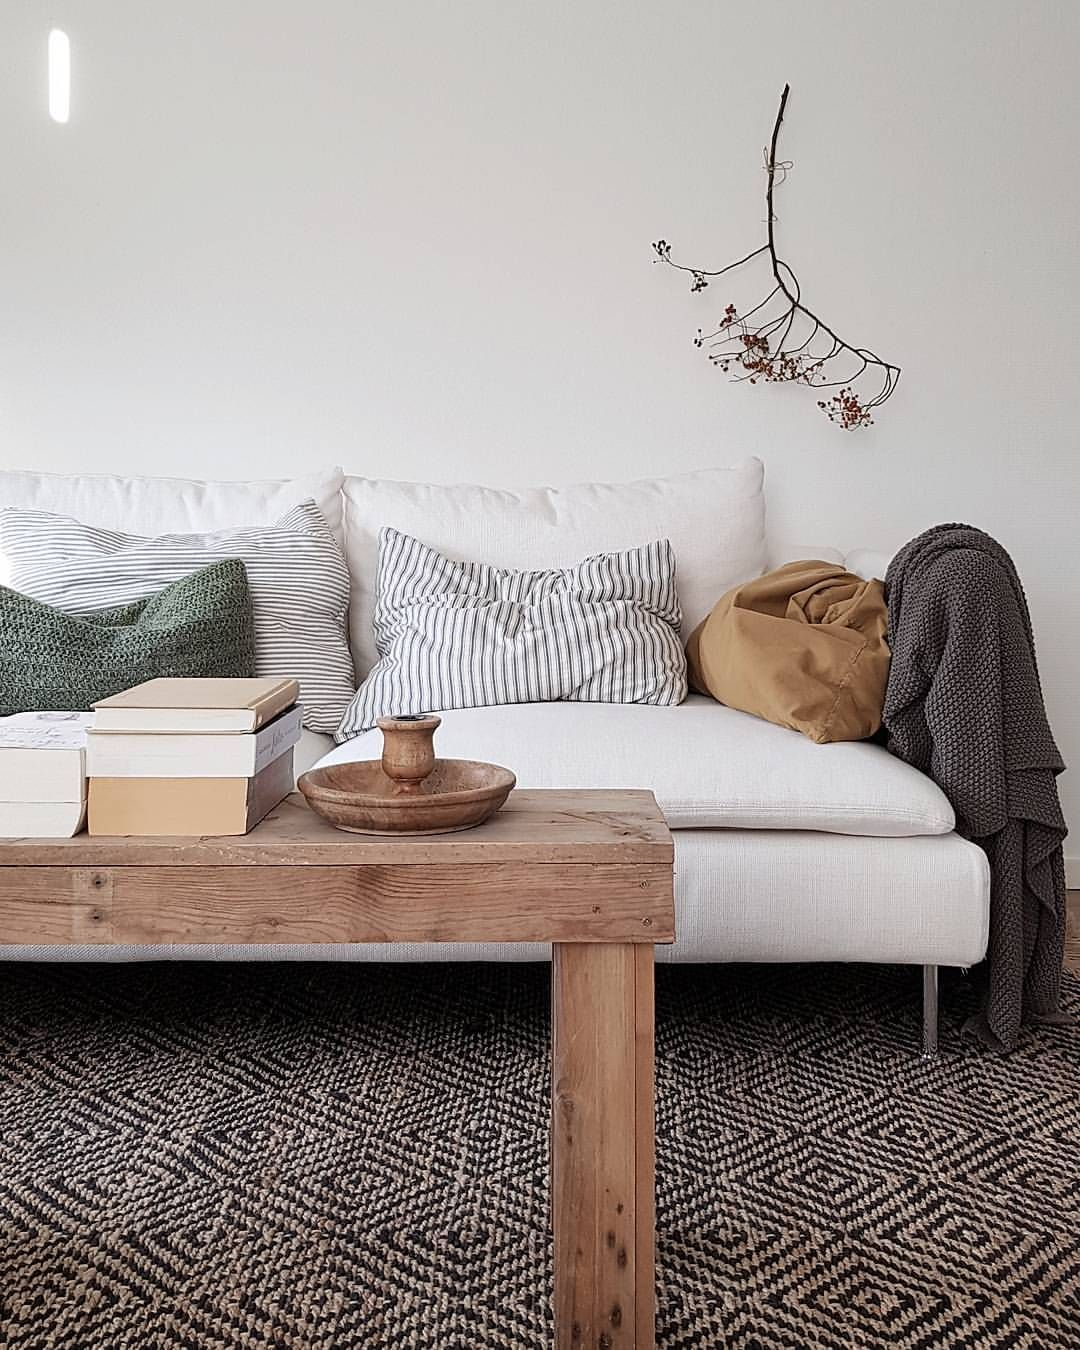 Pin By Aubrey Crownover On Interior Decor In 2019